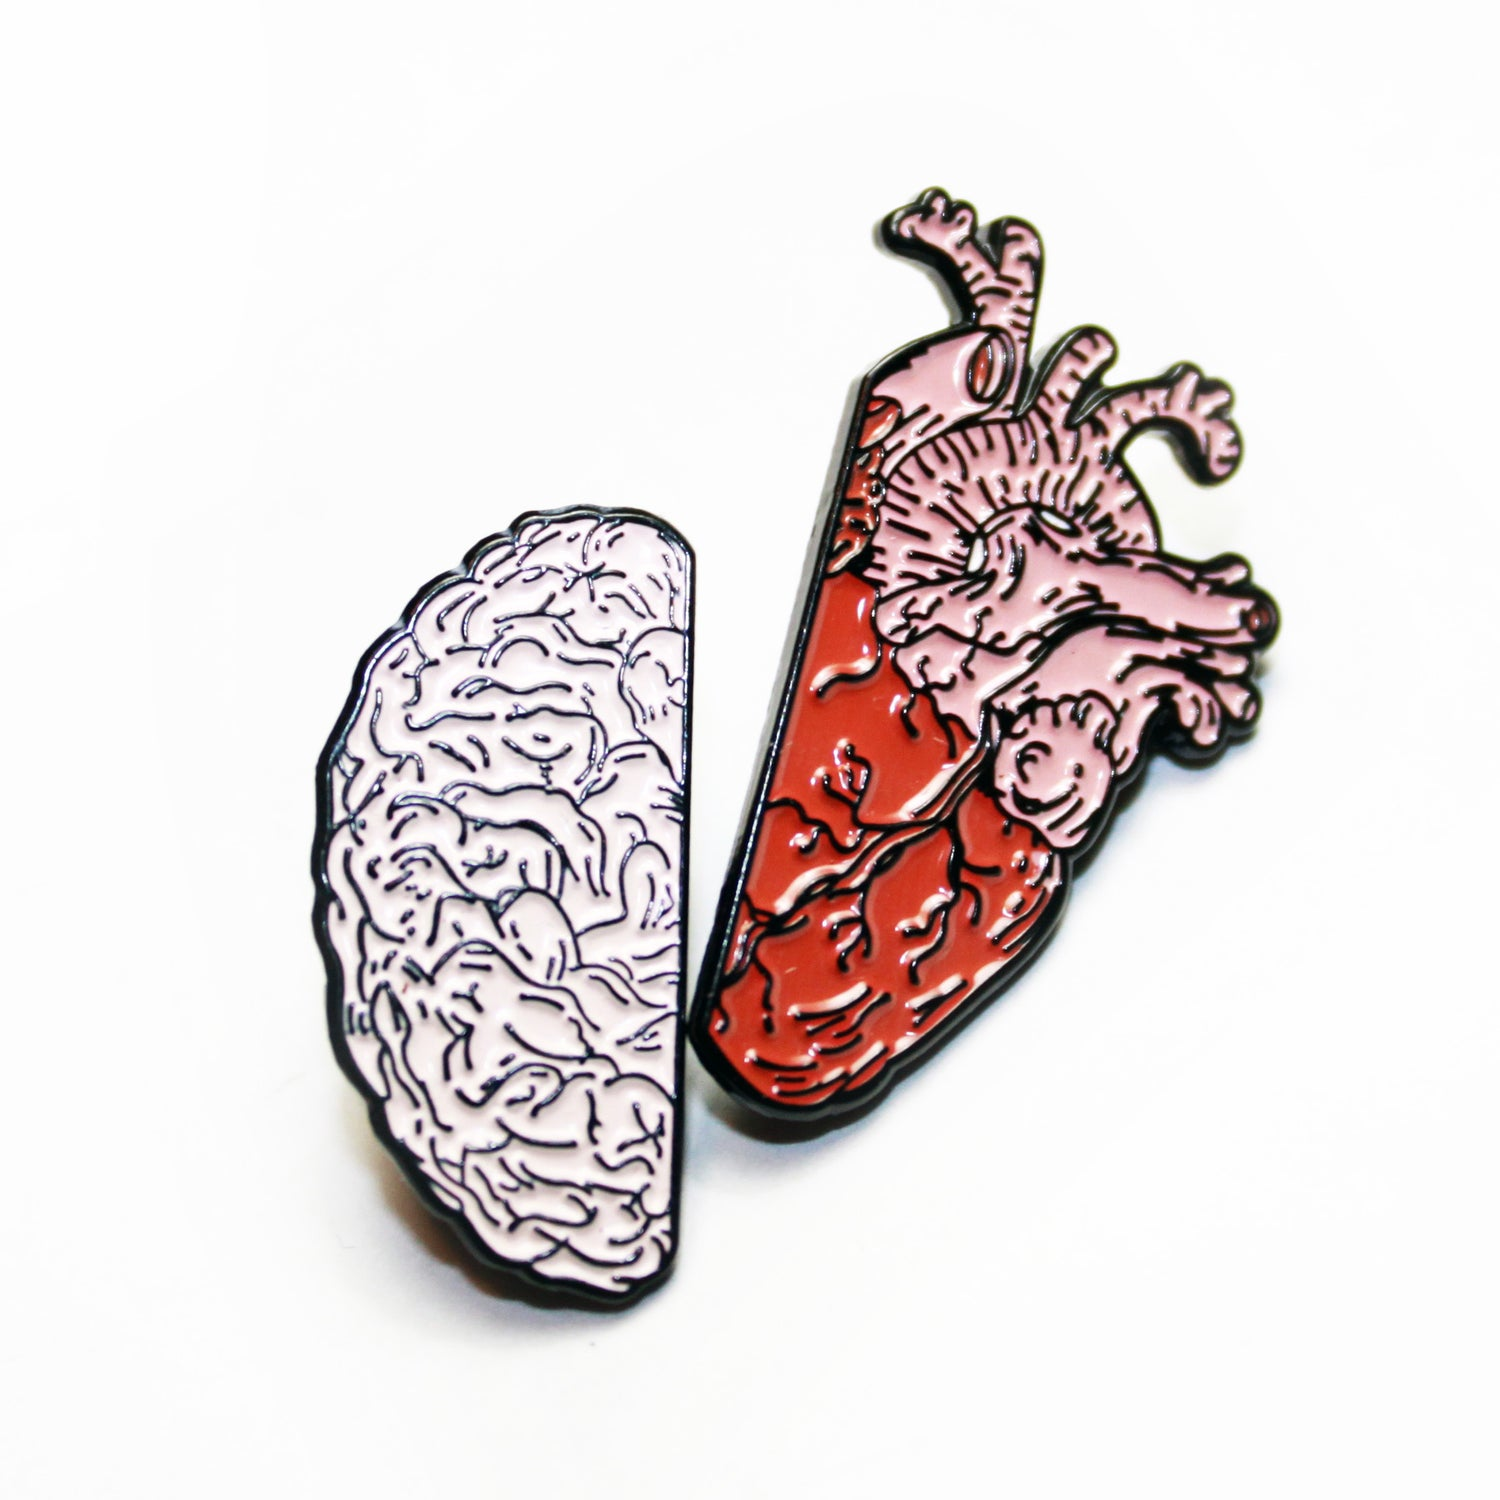 Image of brainheart pin pair